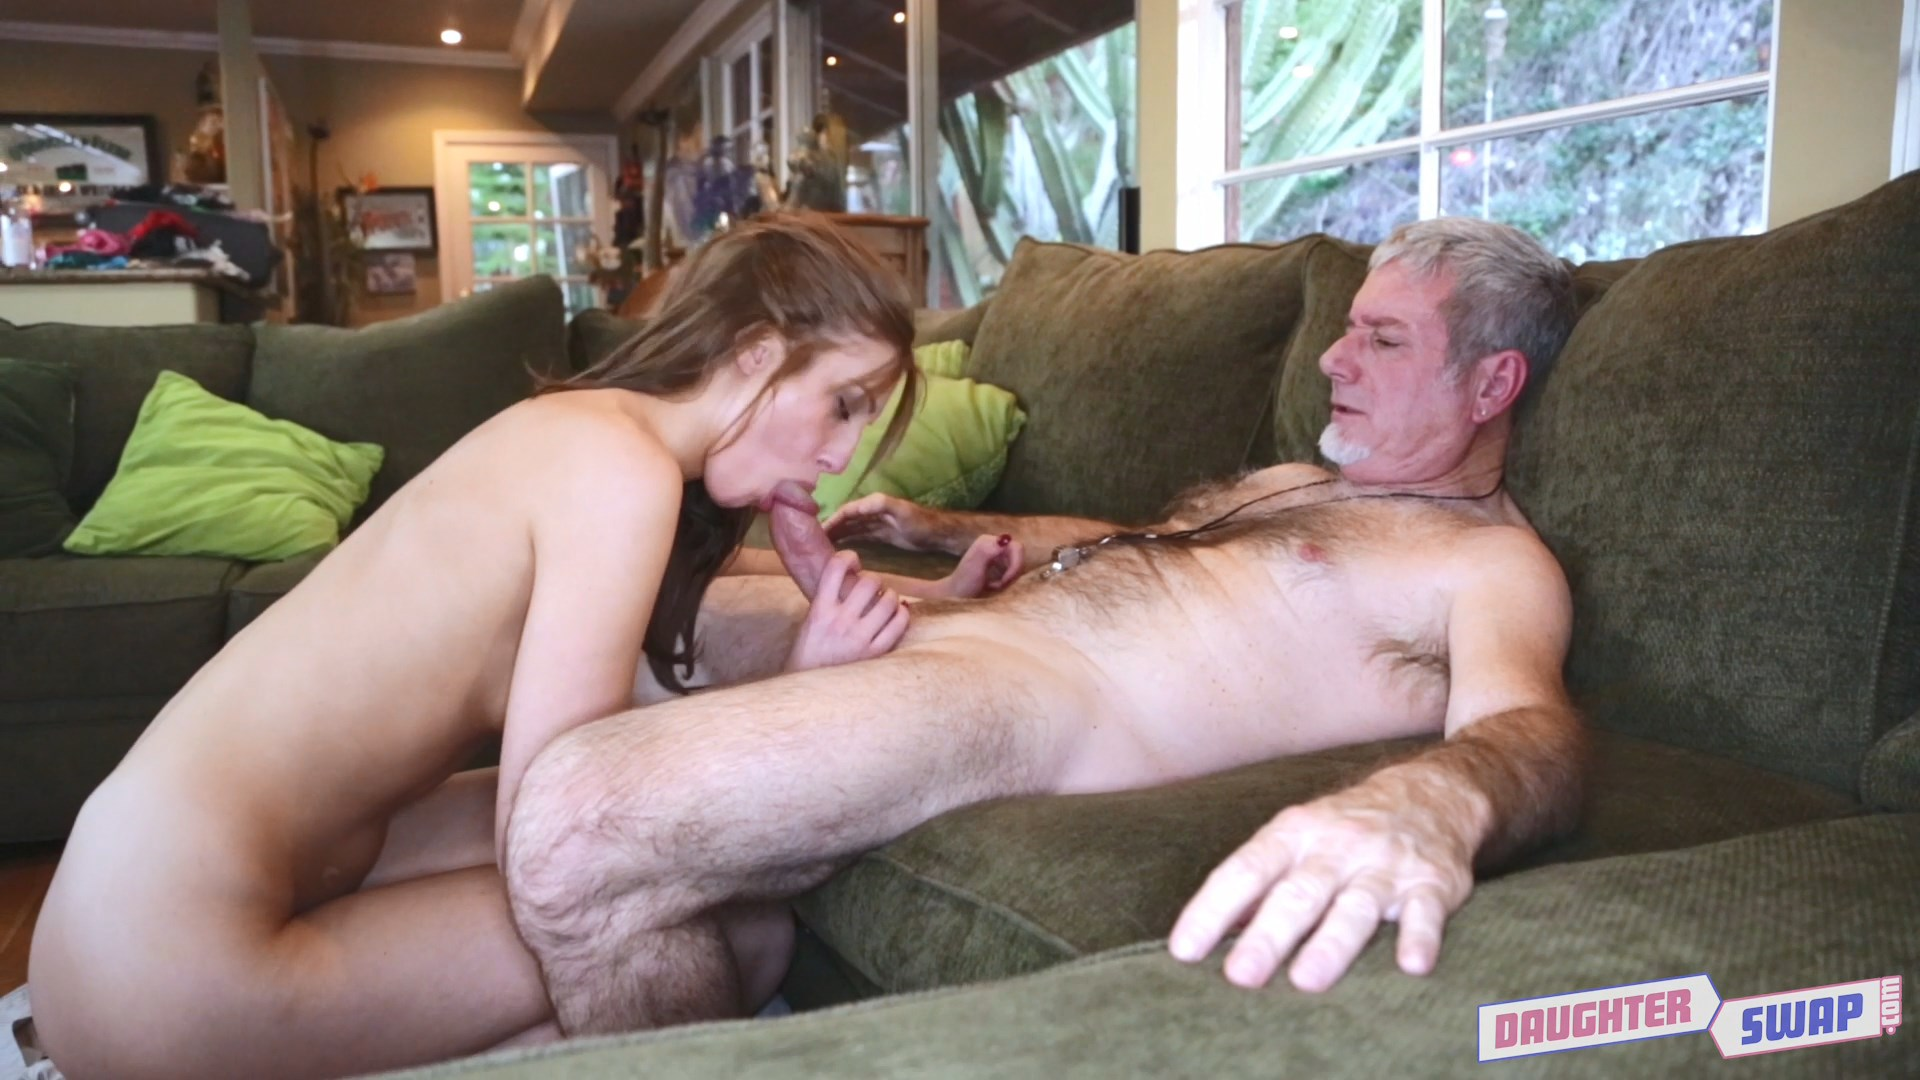 Daddy fucks doughter